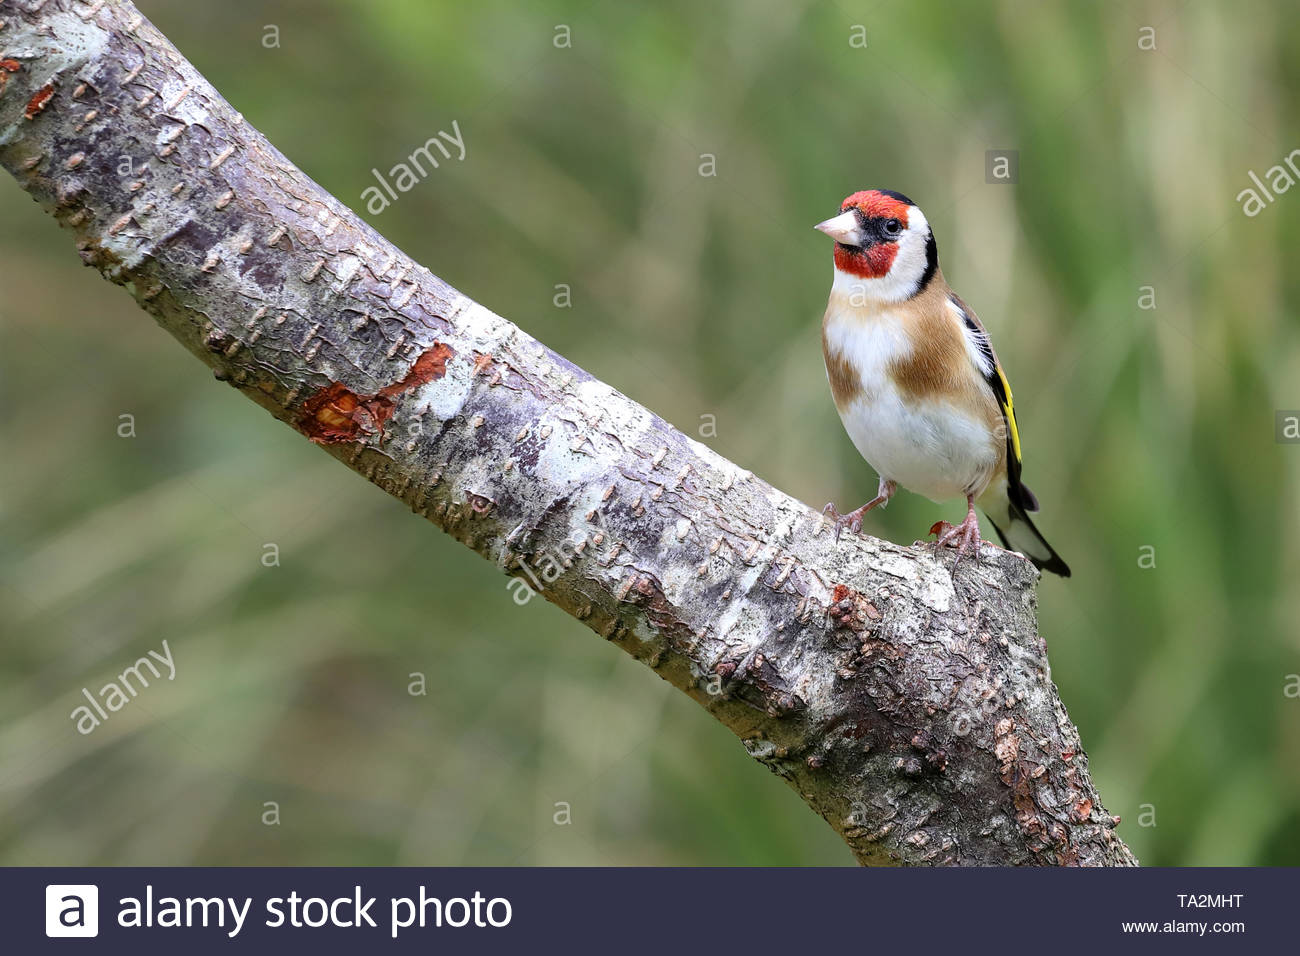 Goldfinch (Carduelis carduelis) on tree branch - Stock Image